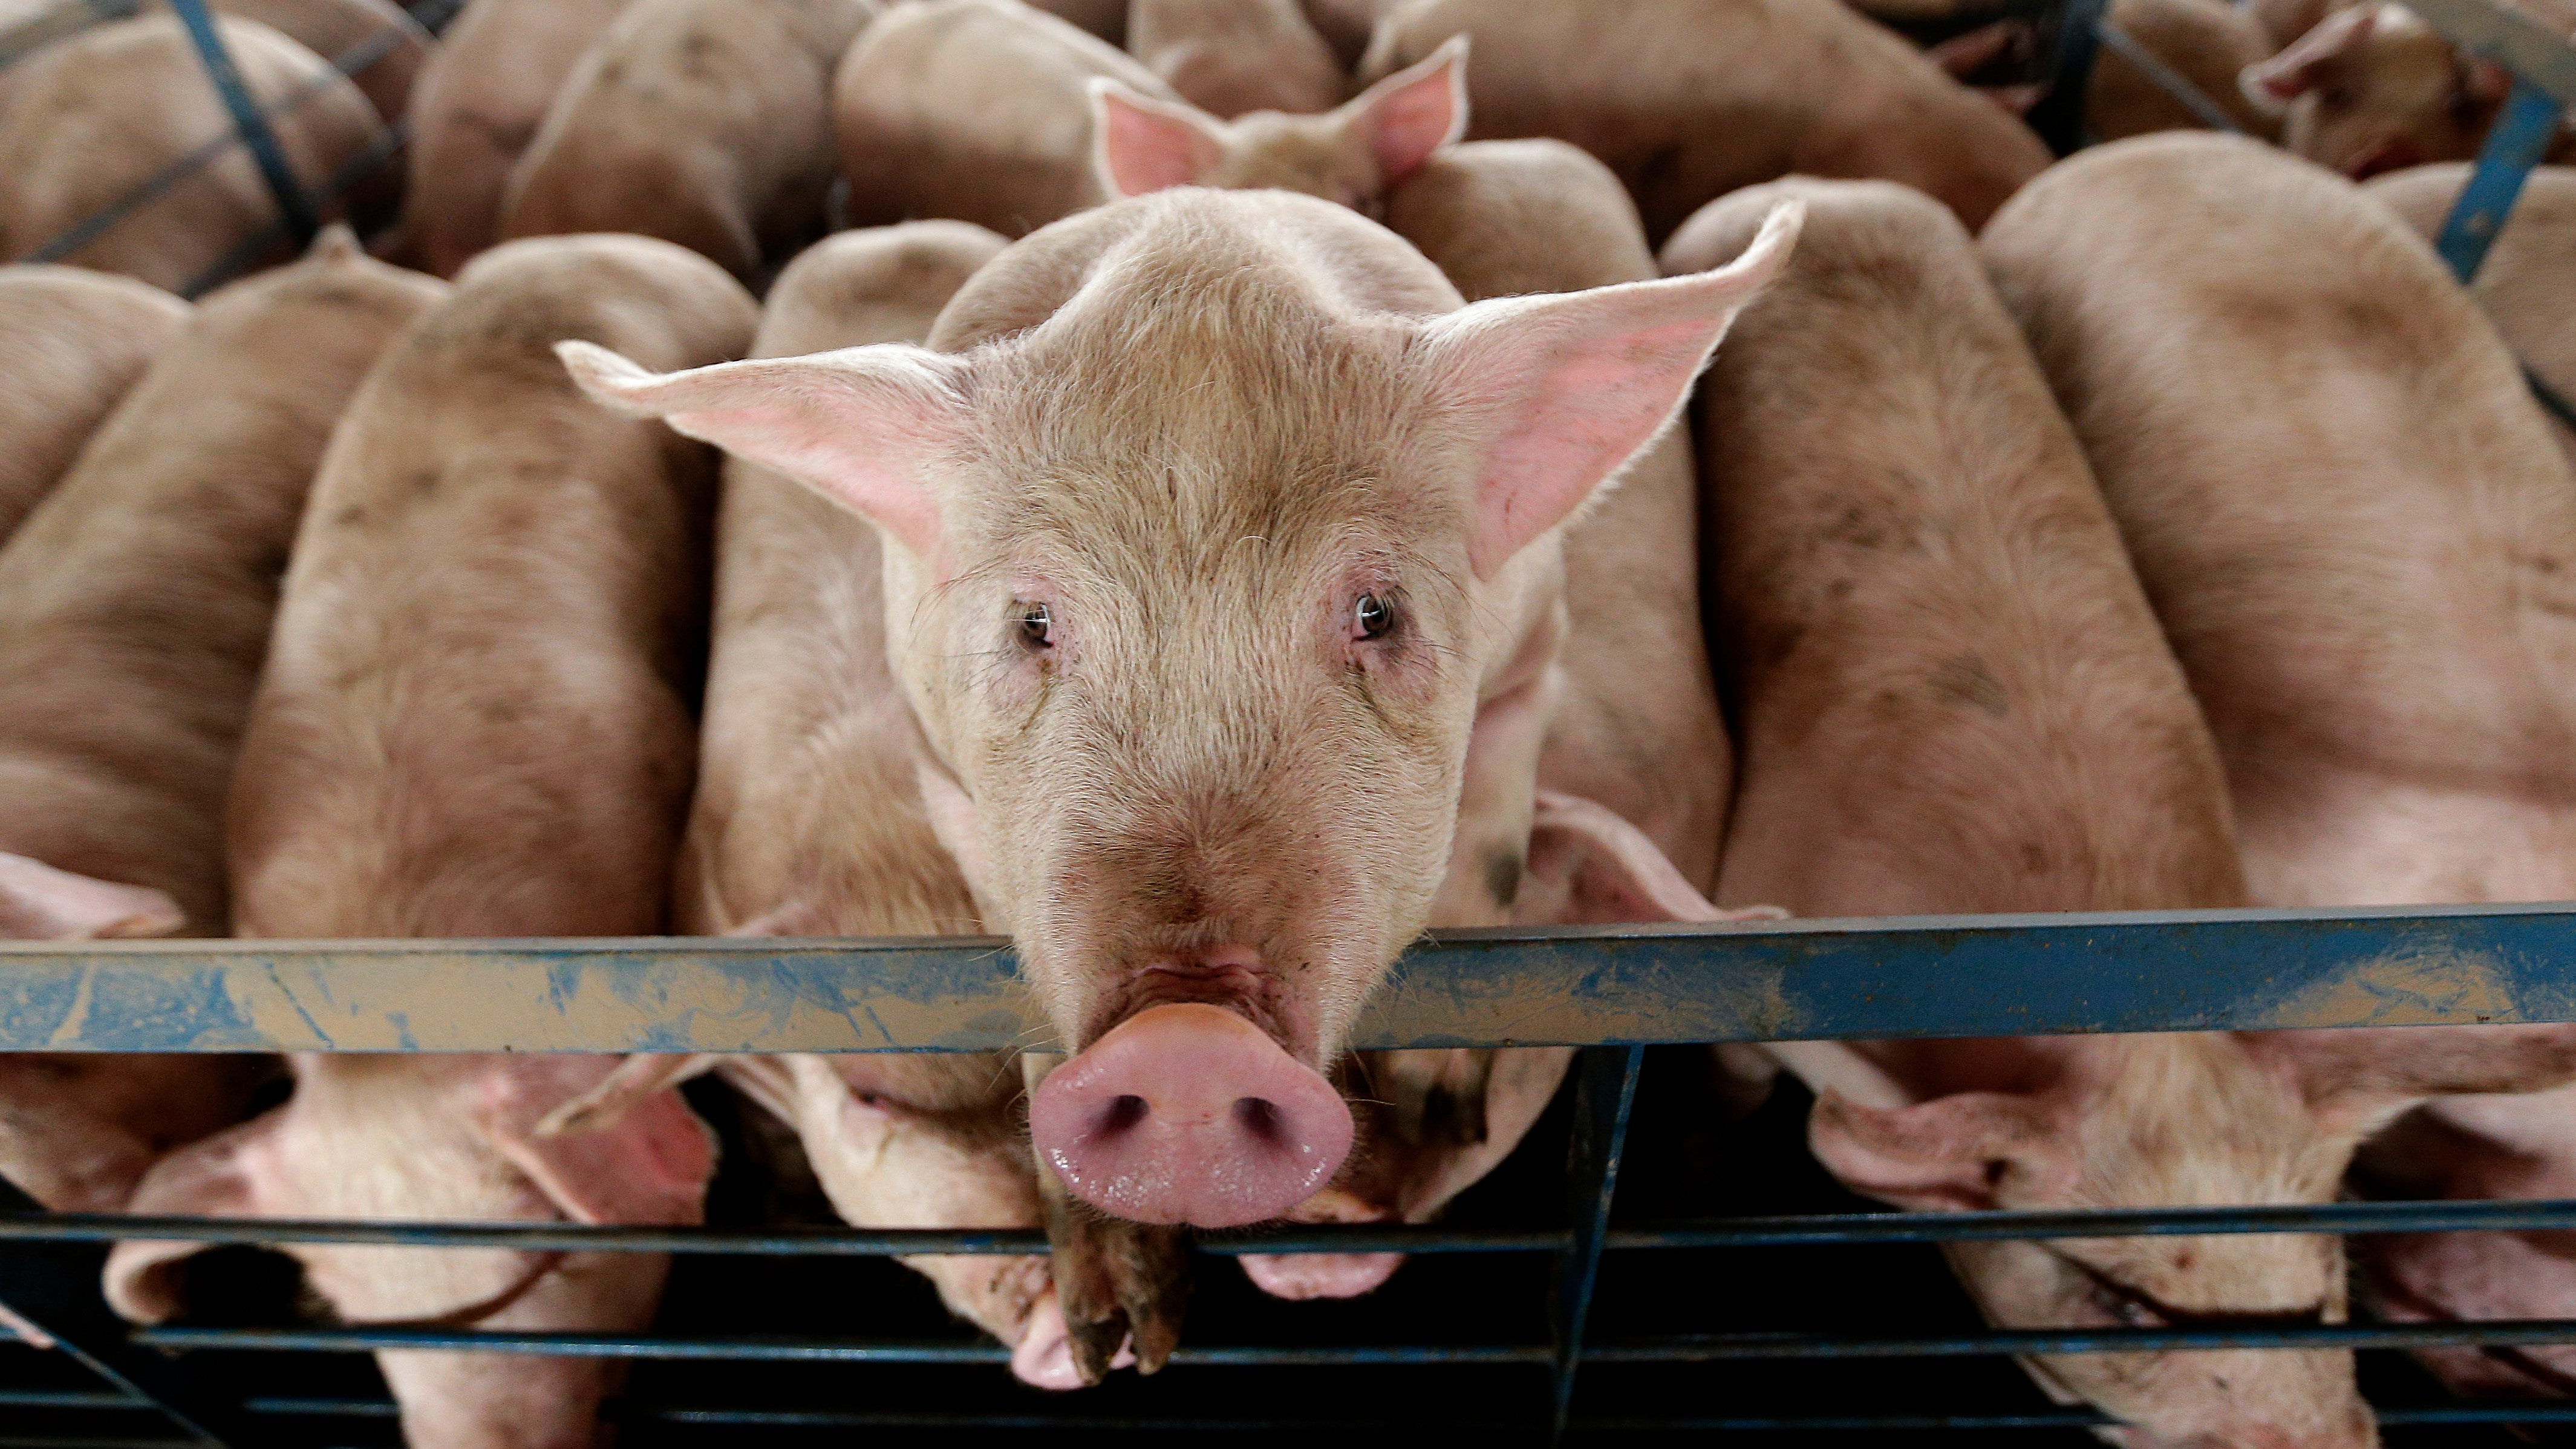 Scientists Partially Revive Disembodied Pig Brains, Raising Huge Questions